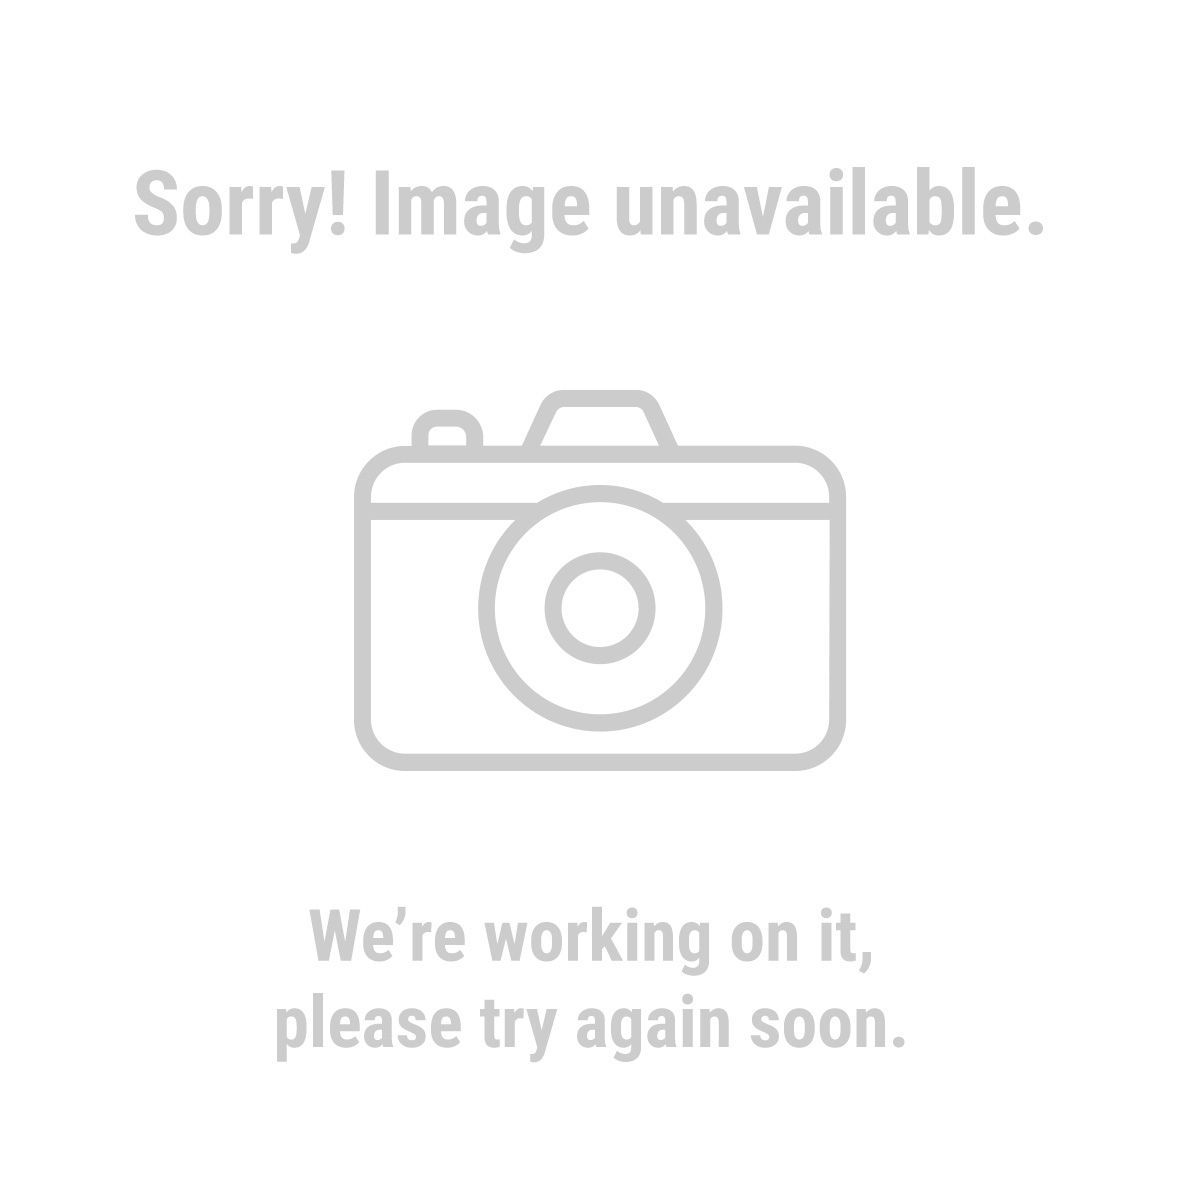 "Pittsburgh 66566 9 Piece 1/4"" Drive Nut and Bolt Extractor Set"